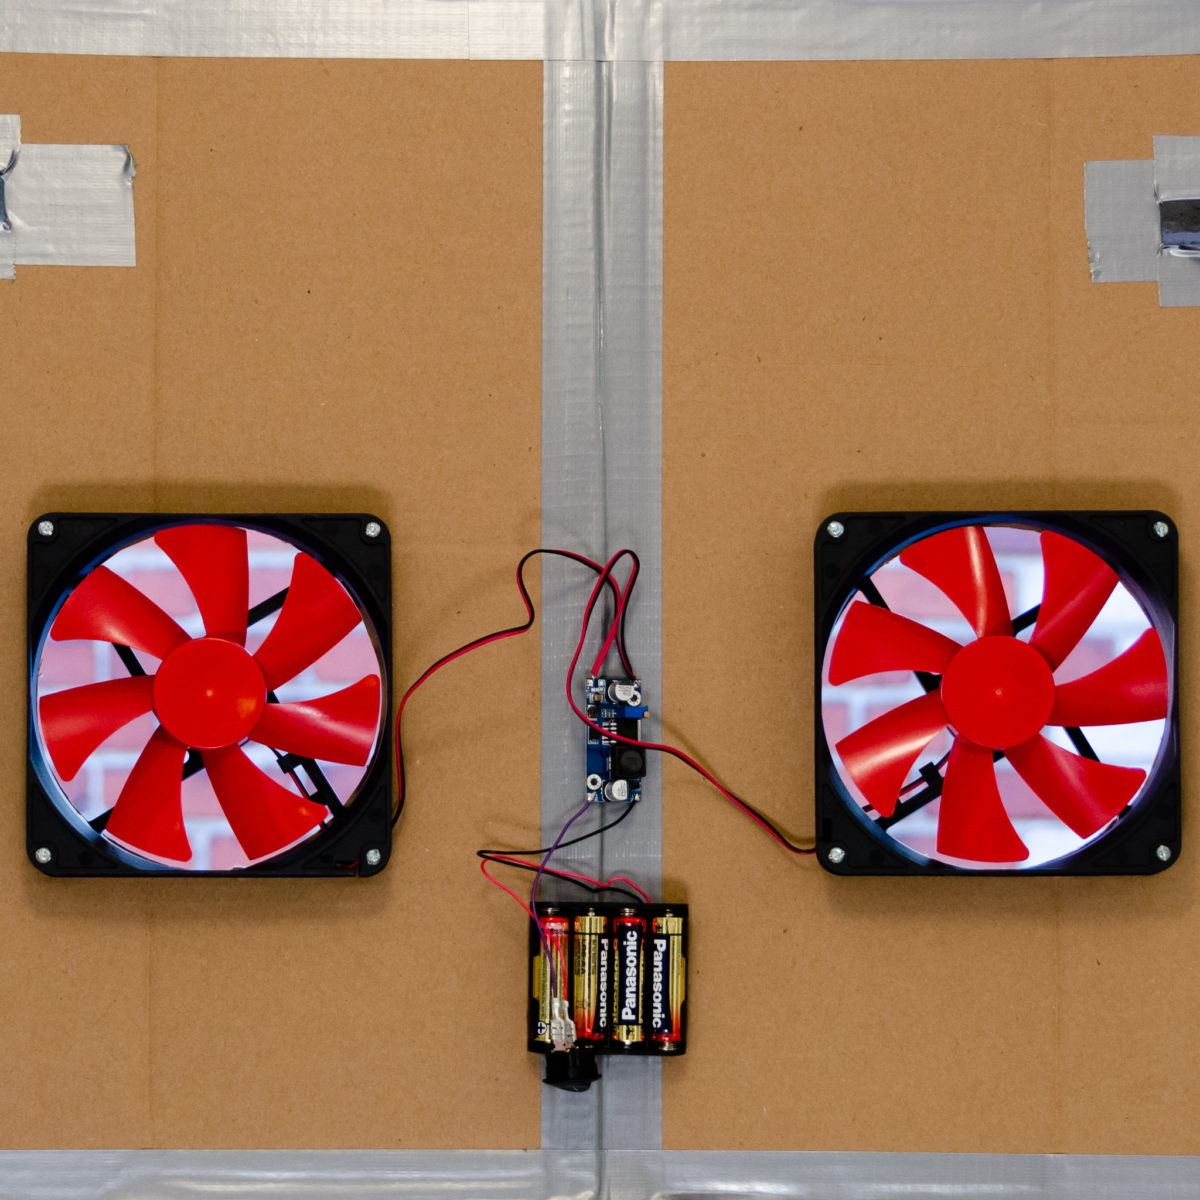 Battery powered window fan prototype